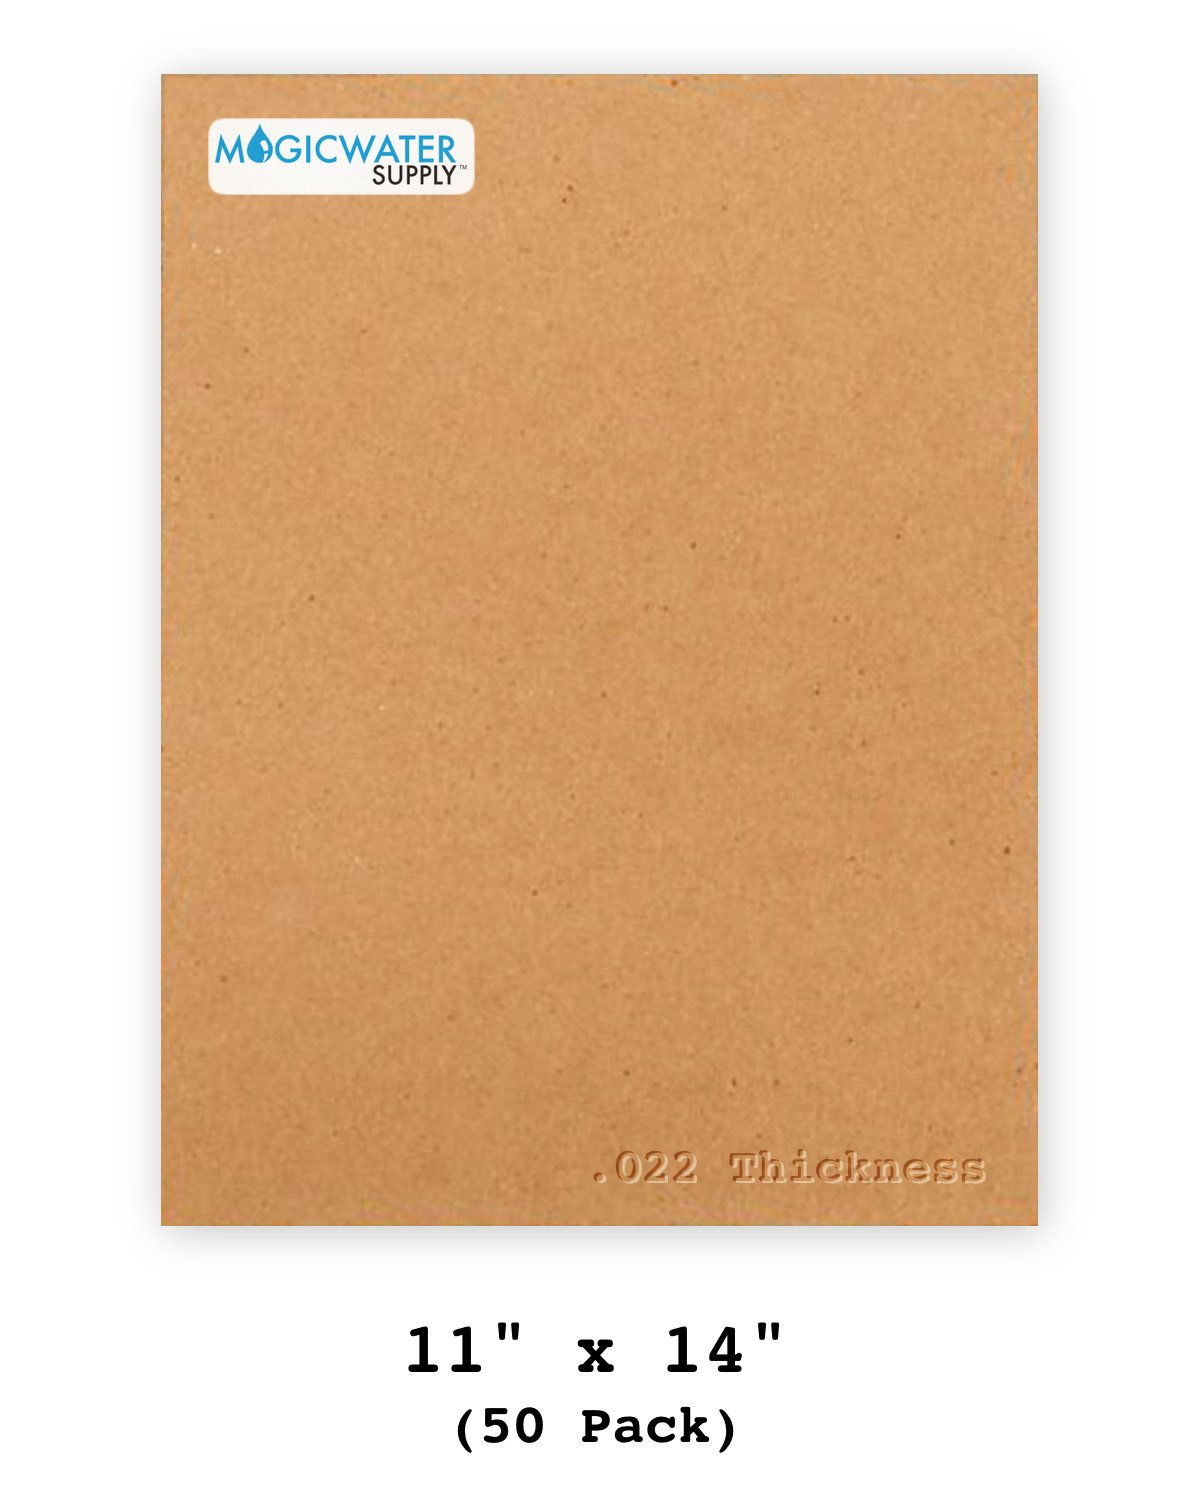 50 Sheets Chipboard 11 x 14 inch - 22pt (point) Light Weight Brown Kraft Cardboard Scrapbook Sheets & Picture Frame Backing (.022 Caliper Thick) Paper Board | MagicWater Supply